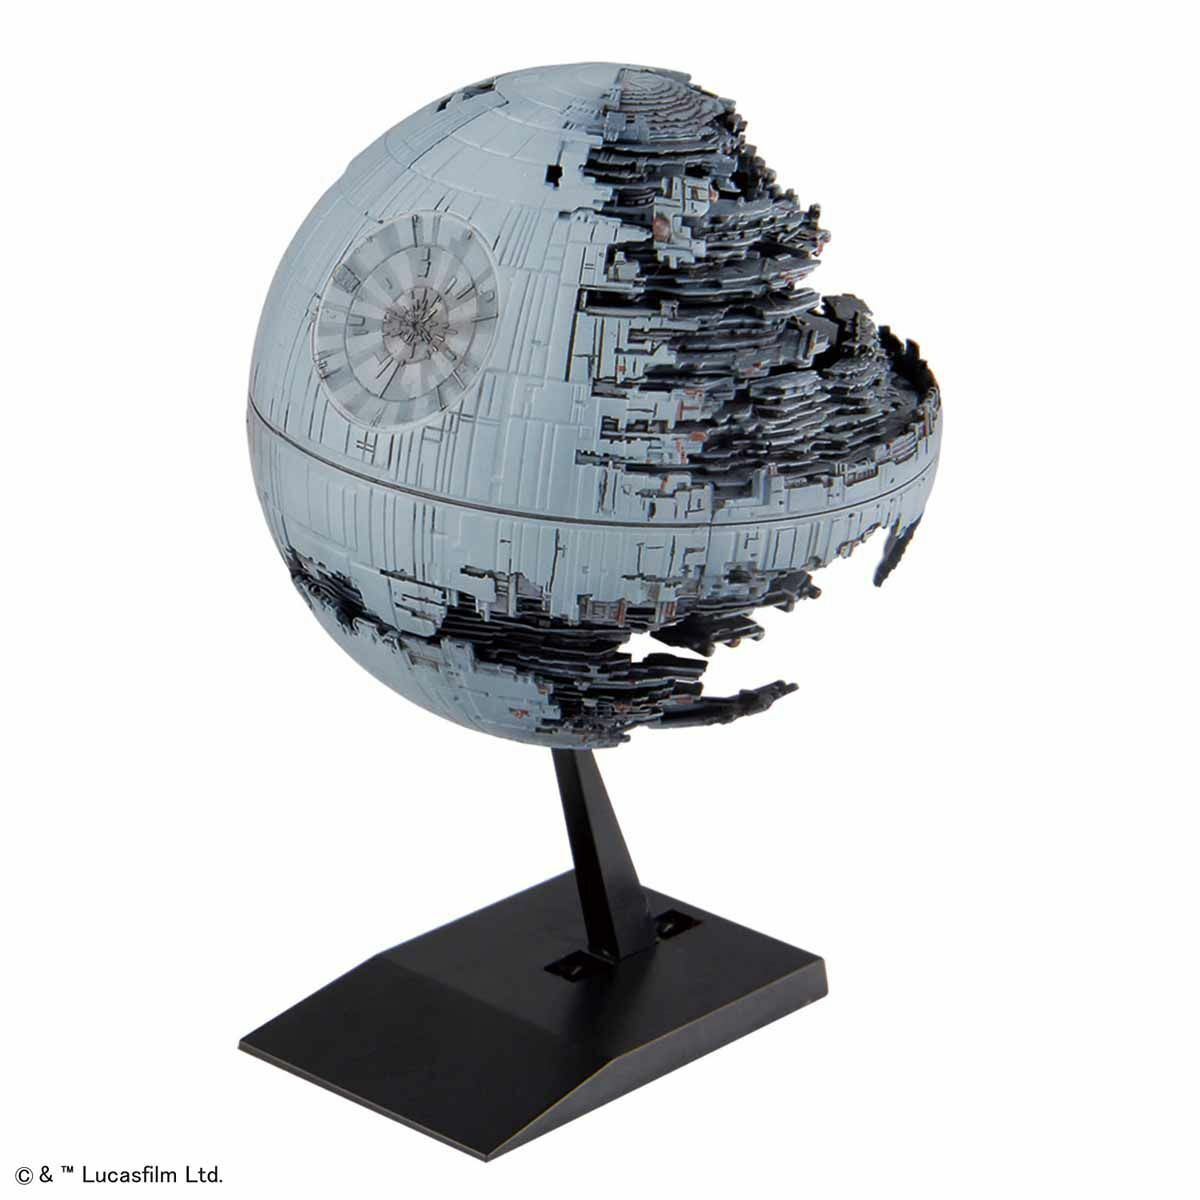 "Bandai 013 Death Star II ""Star Wars"", Bandai Vehicle Model"